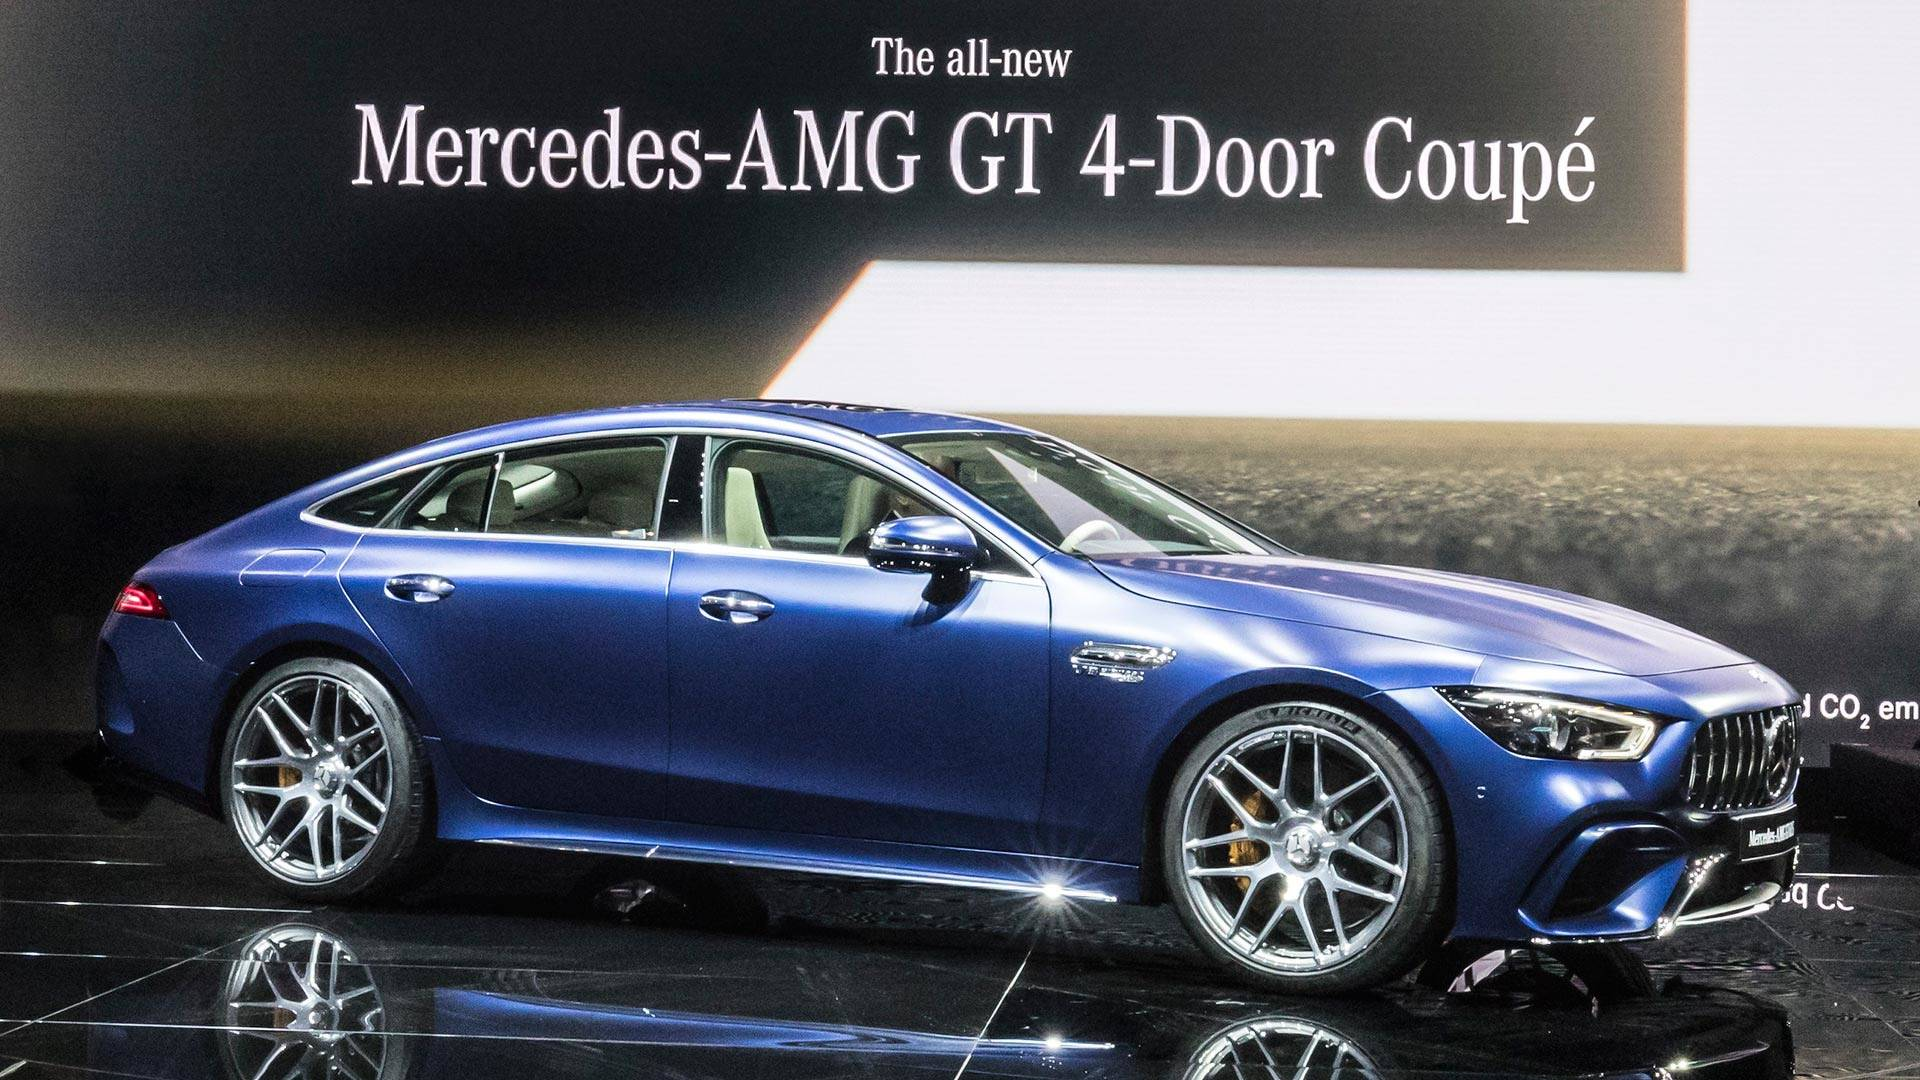 2019 Mercedes Amg Gt 4 Door Coupe Storms Geneva With 630 Hp 12v Key On Power Distribution Idea Ford Mustang Forums Corral